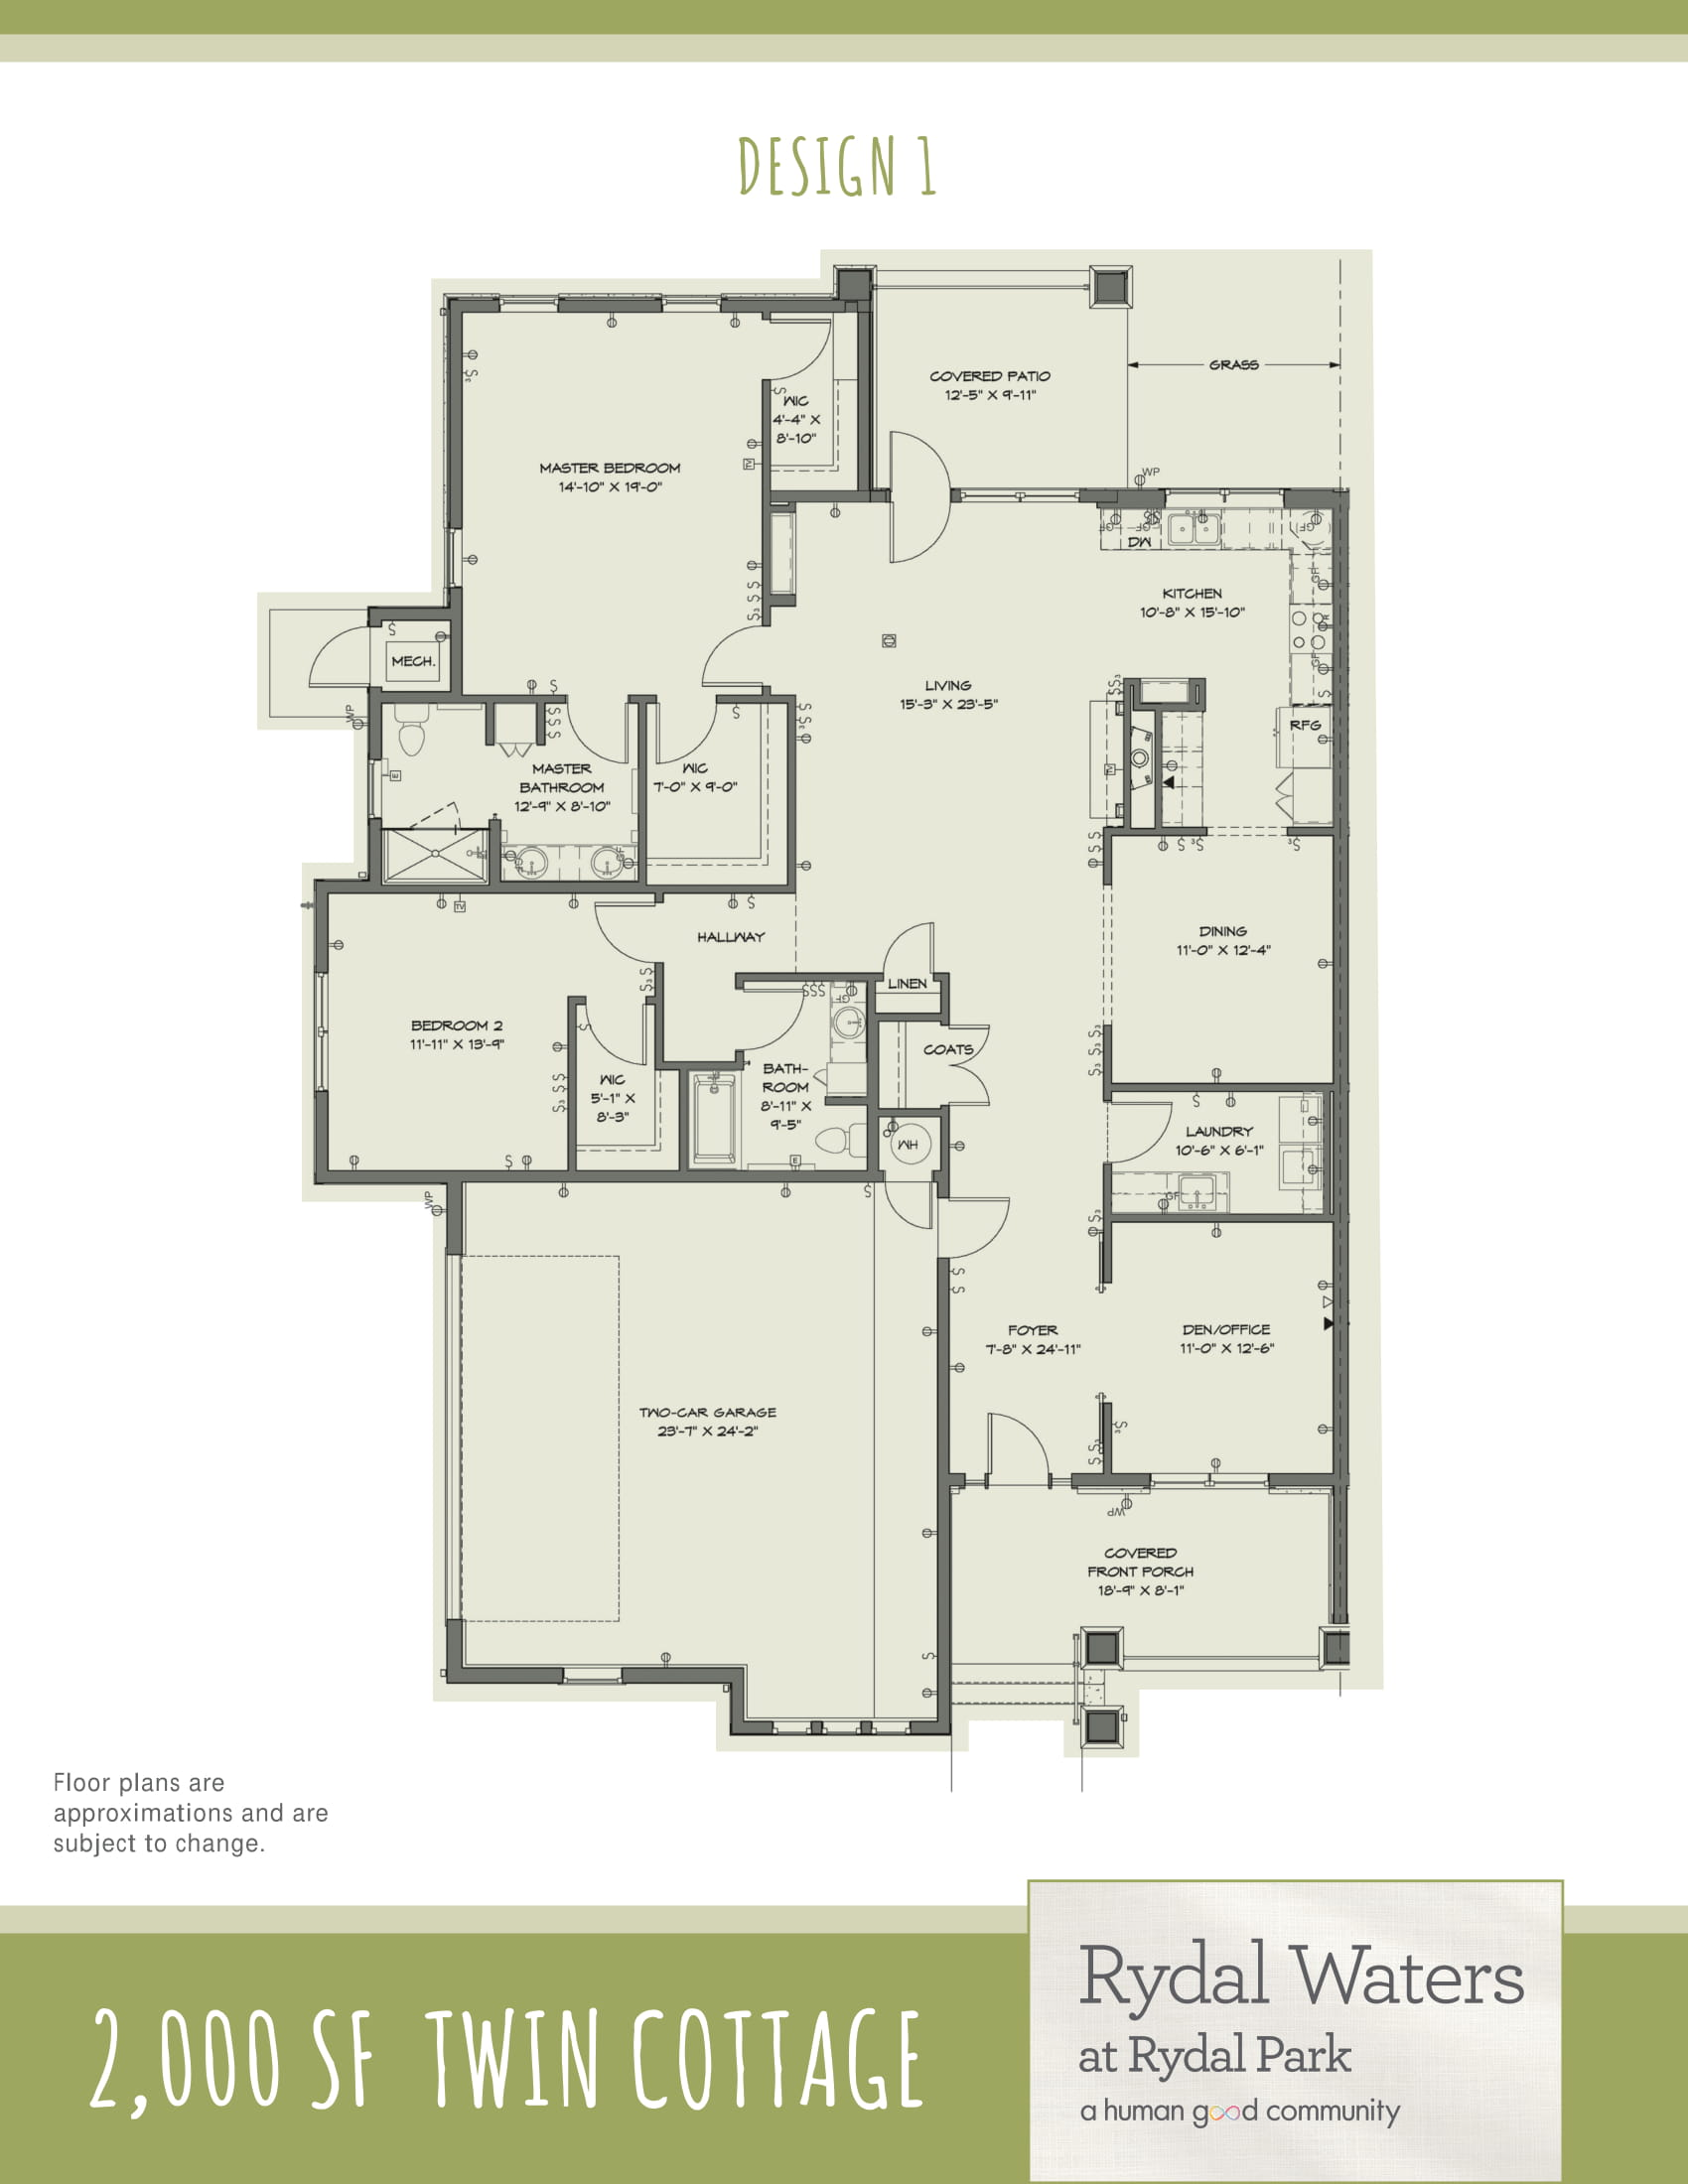 rydal-waters-cottage-2000_Design1-1